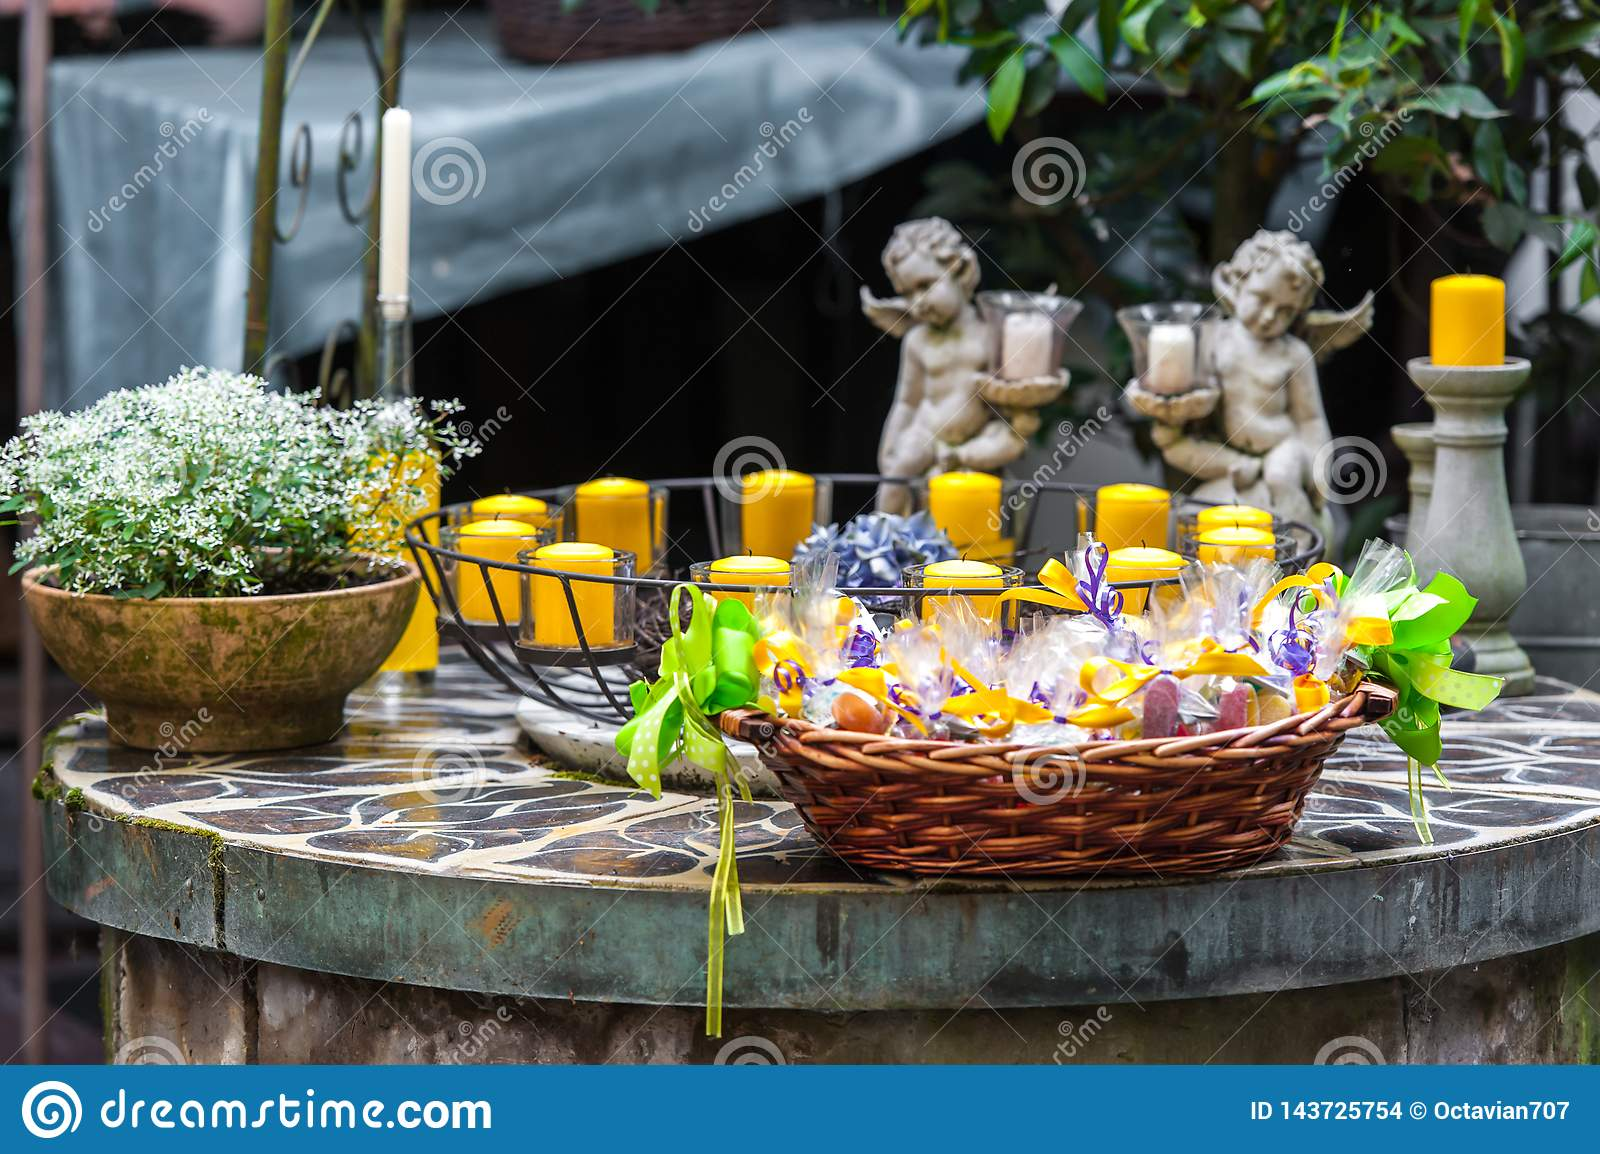 Decorative table with candles and flowers